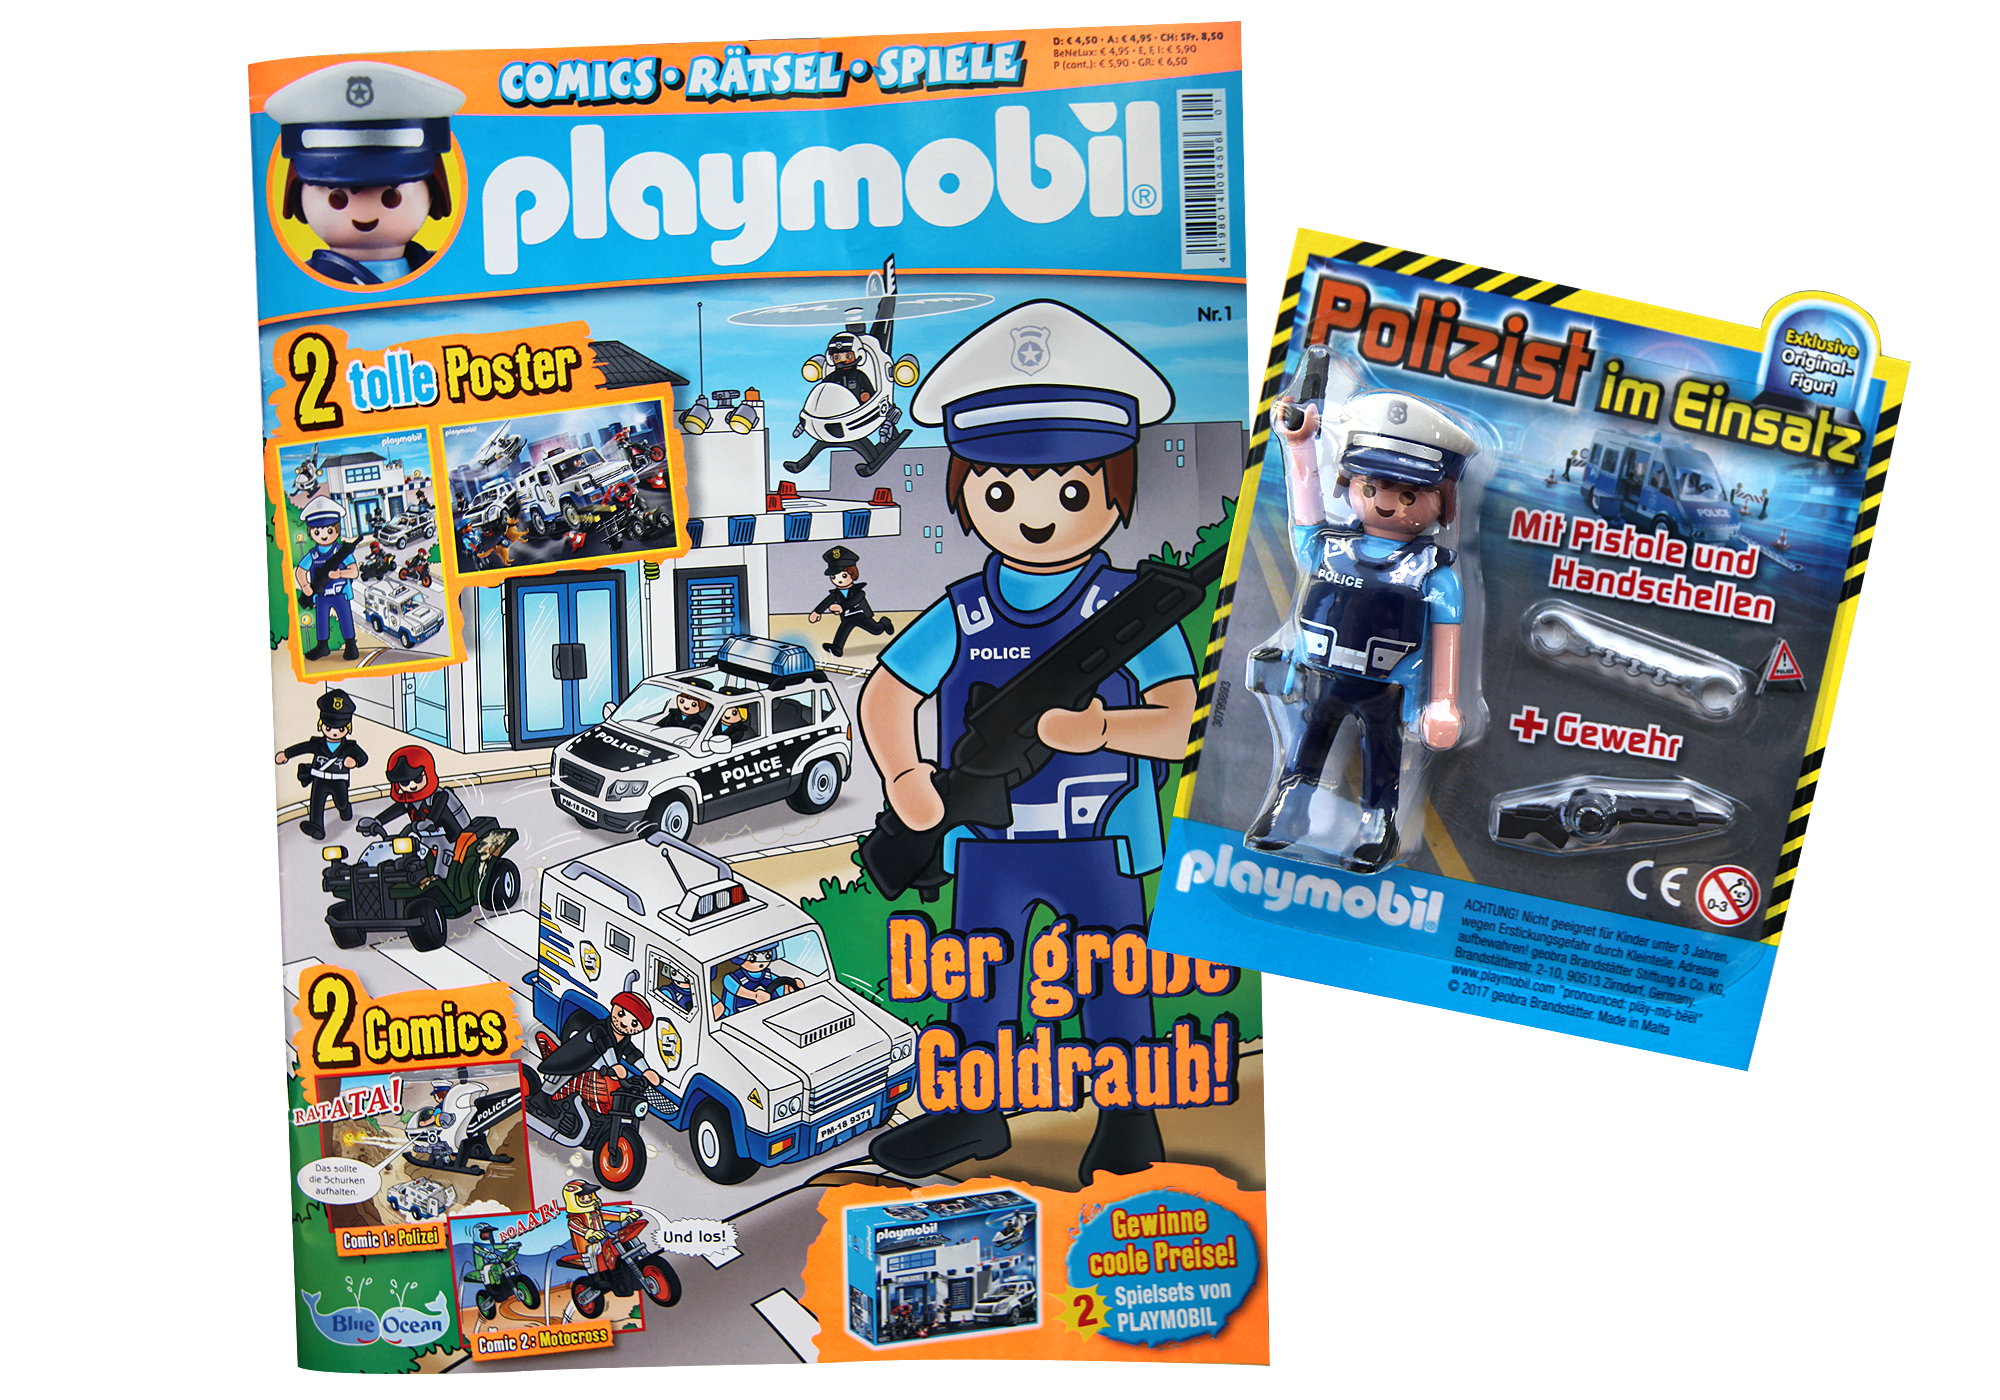 http://media.playmobil.com/i/playmobil/80600_product_detail/PLAYMOBIL-Magazin 1/2018 (Heft 58)